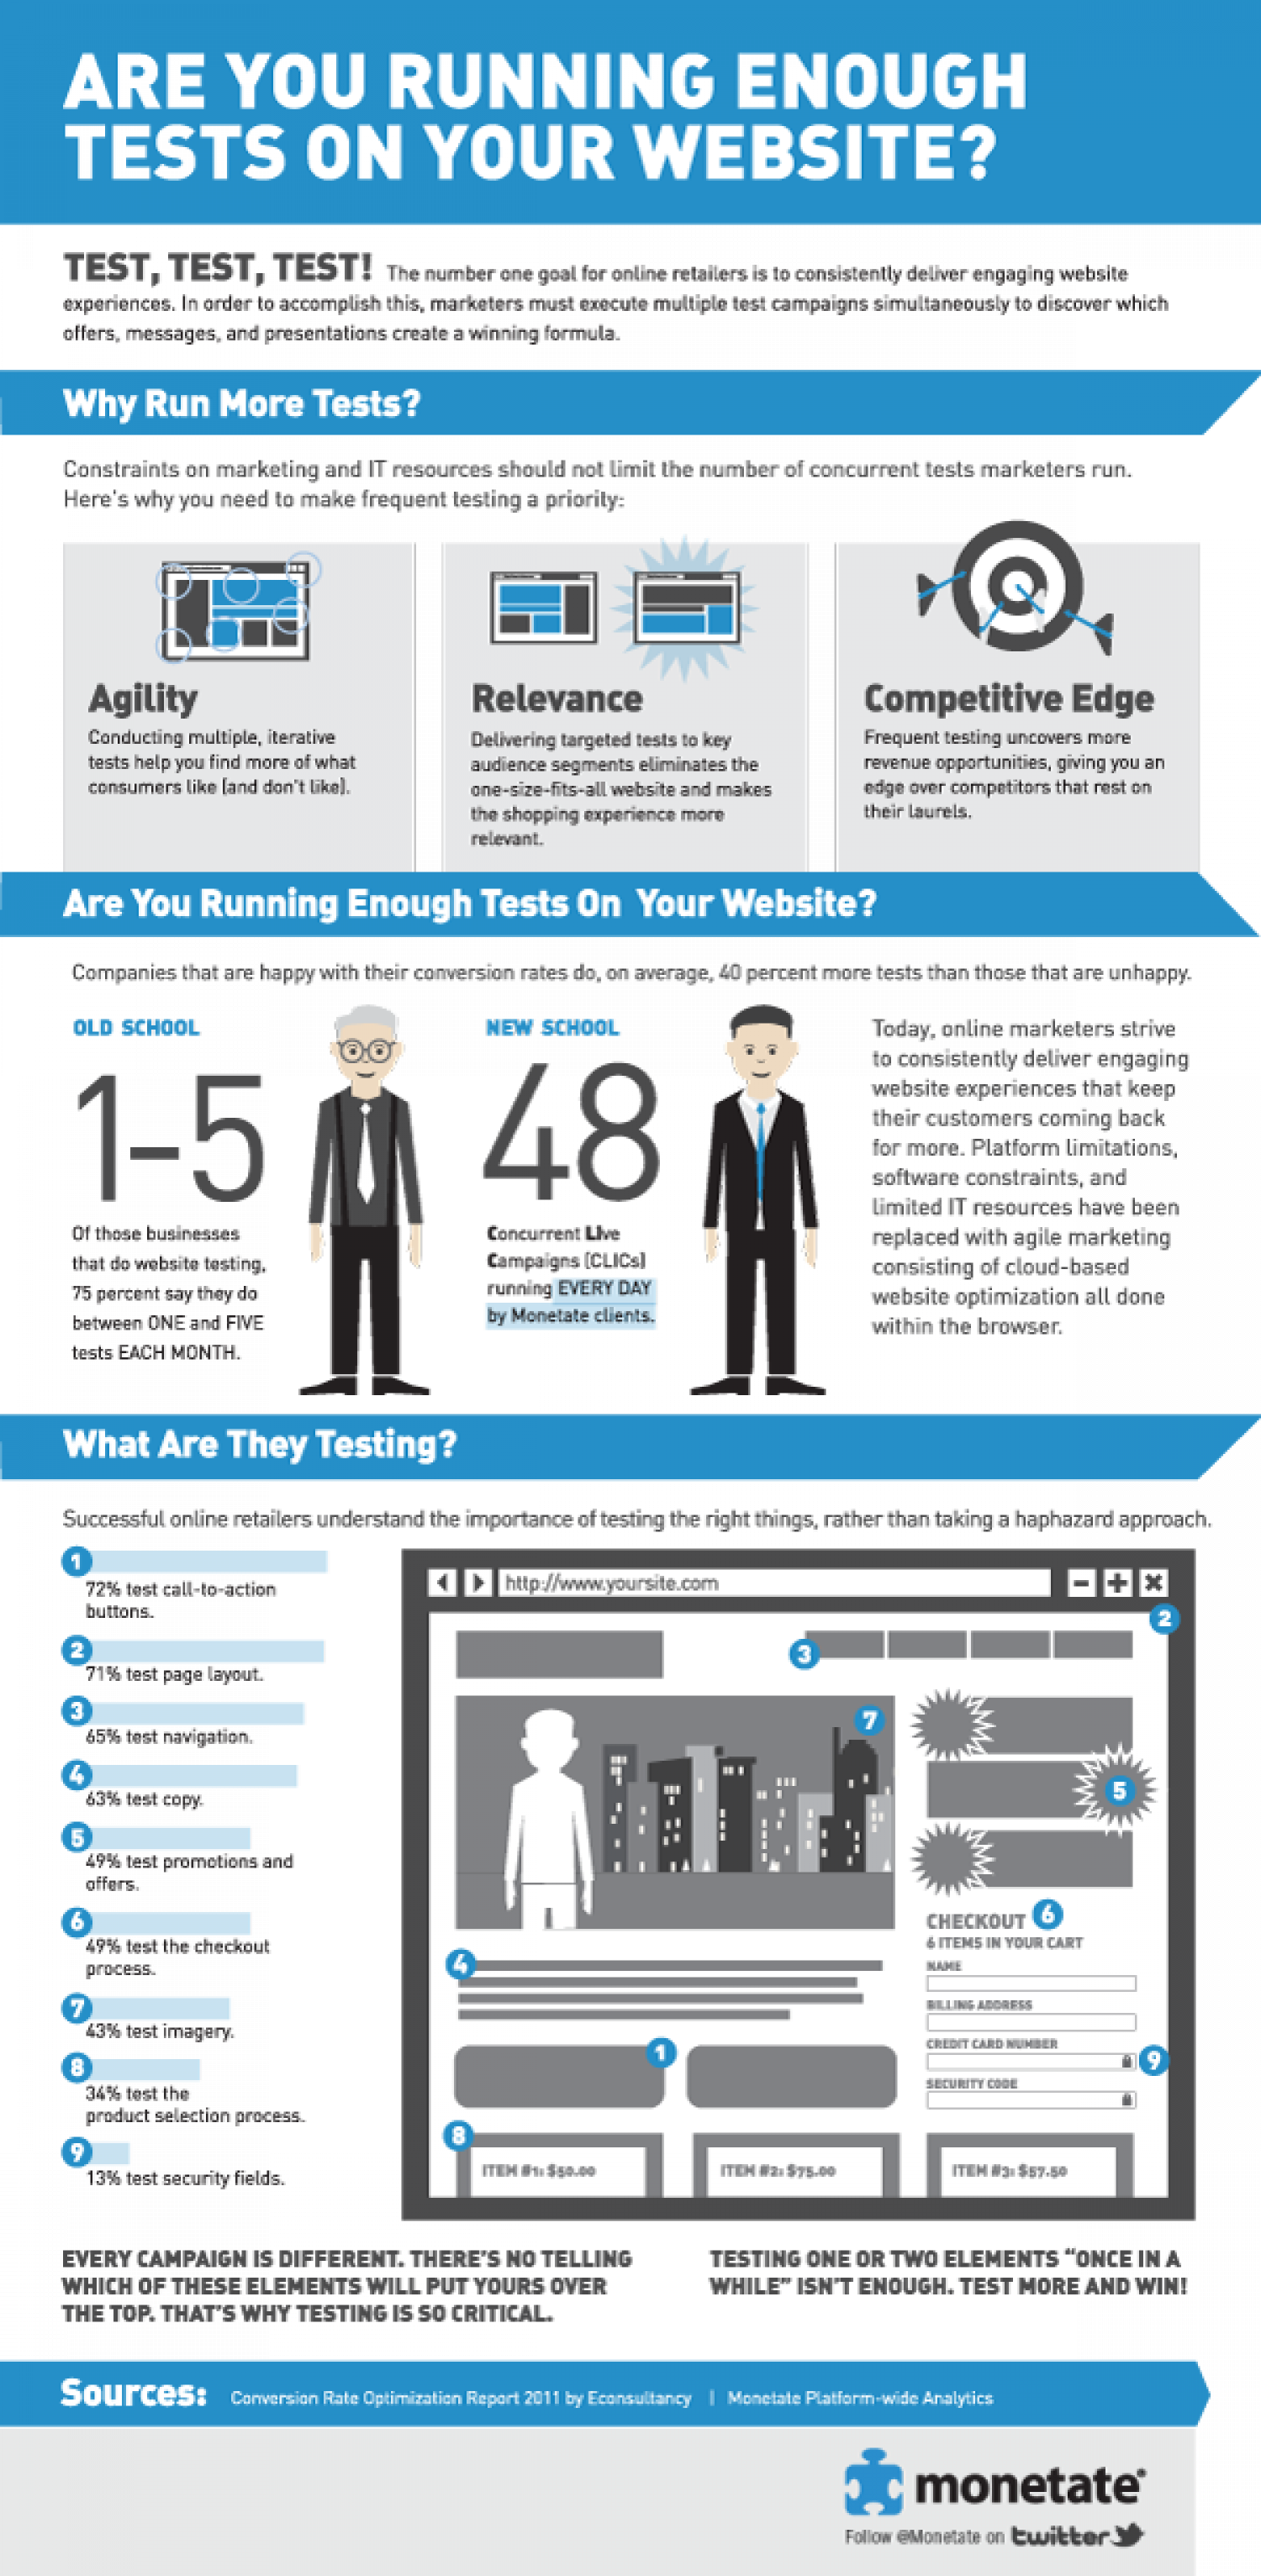 Are You Running Enough Tests on Your Website? Infographic